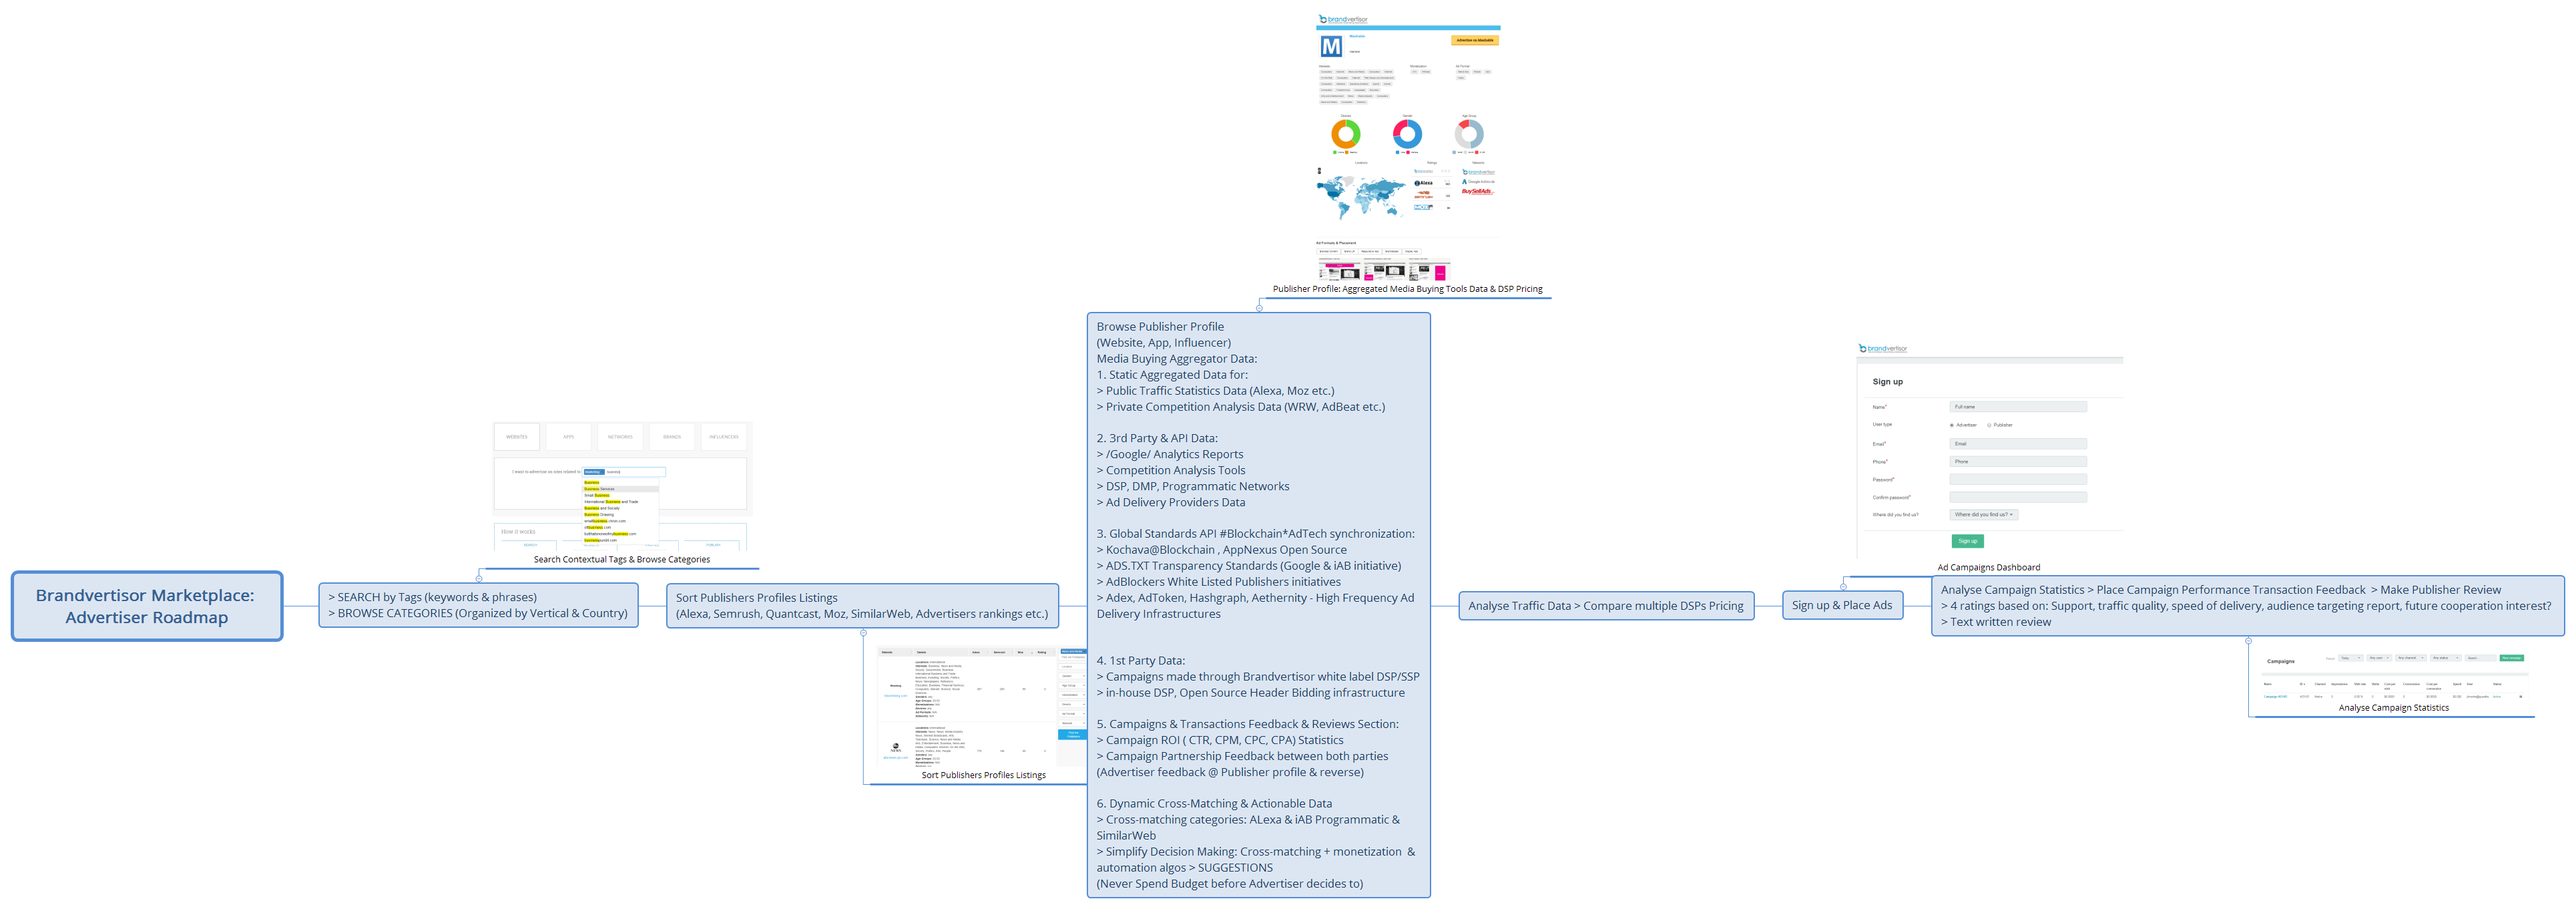 Brandvertisor Marketplace: Advertiser Roadmap - XMind - Mind Mapping